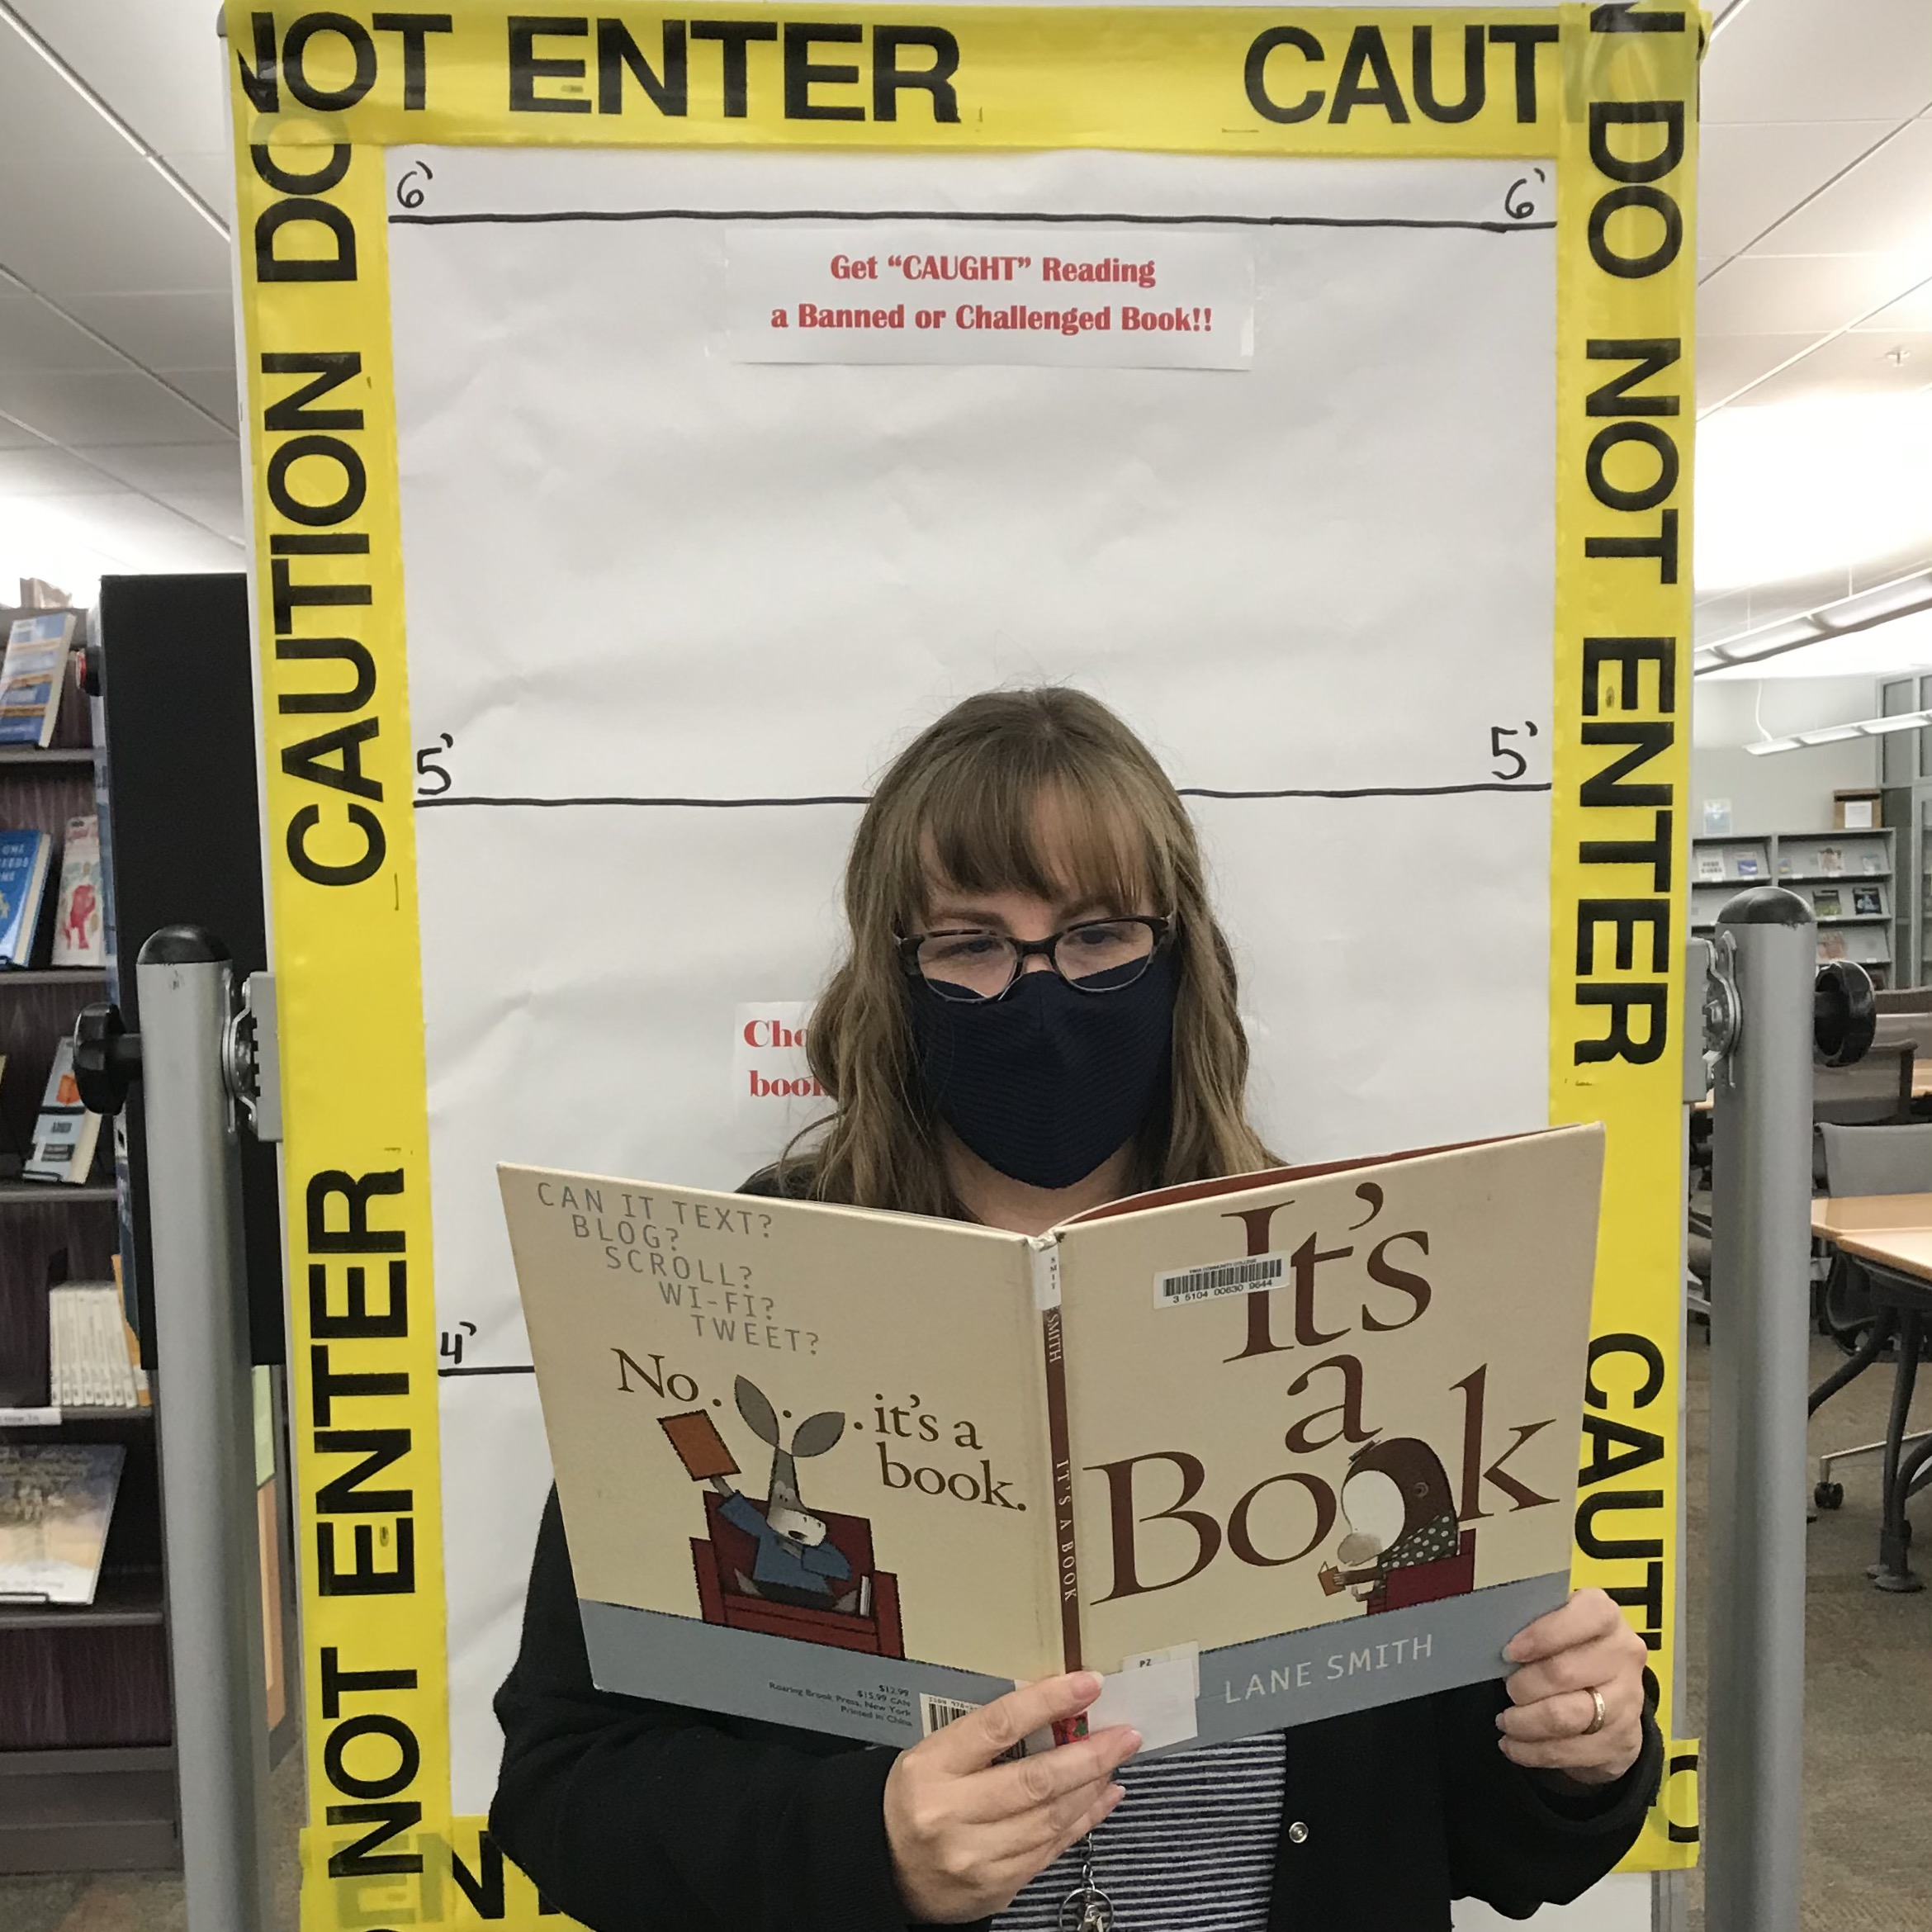 Image of employee with a banned book